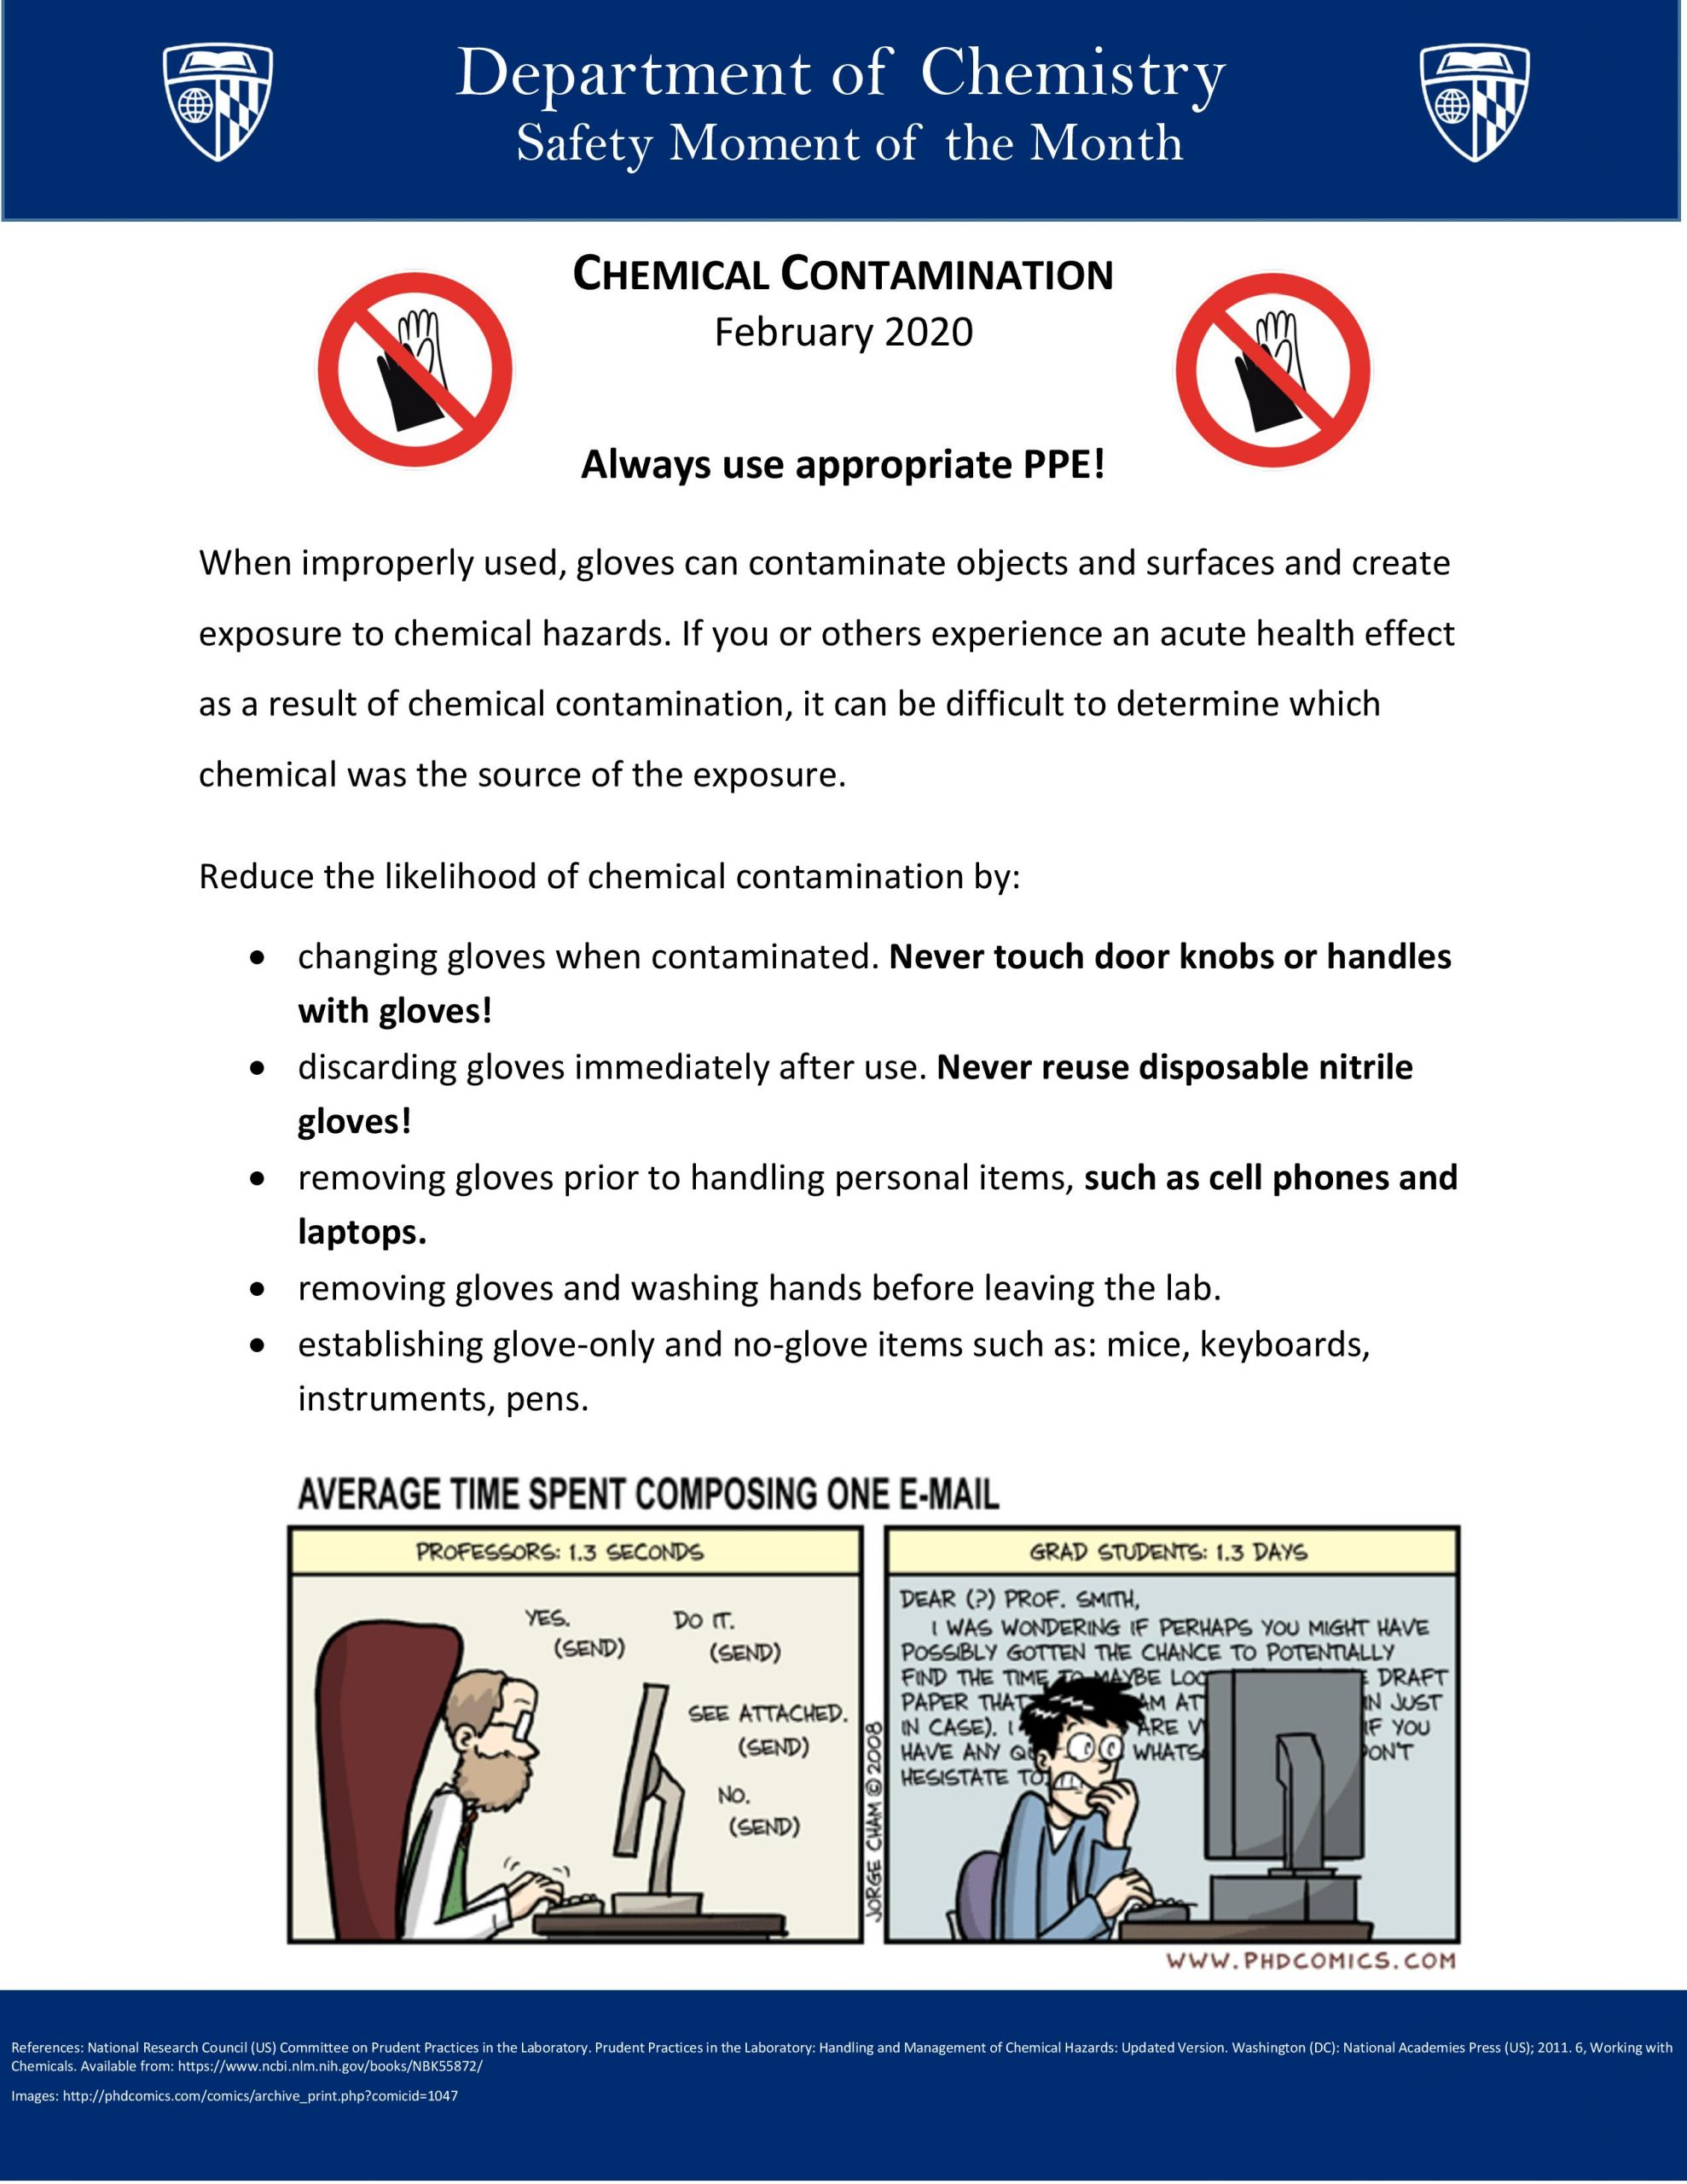 Always use appropriate PPE! When improperly used, gloves can contaminate objects and surfaces and create exposure to chemical hazards. If you or others experience an acute health effect as a result of chemical contamination, it can be difficult to determine which chemical was the source of the exposure. Reduce the likelihood of chemical contamination by: Changing gloves when contaminated. Never touch door knobs or handles with gloves! Discarding gloves immediately after use. Never reuse disposable nitrile gloves! Removing gloves prior to handling personal items, such as cell phones and laptops. Removing gloves and washing hands before leaving the lab. Establishing glove-only and no-glove items such as: mice, keyboards, instruments, pens.